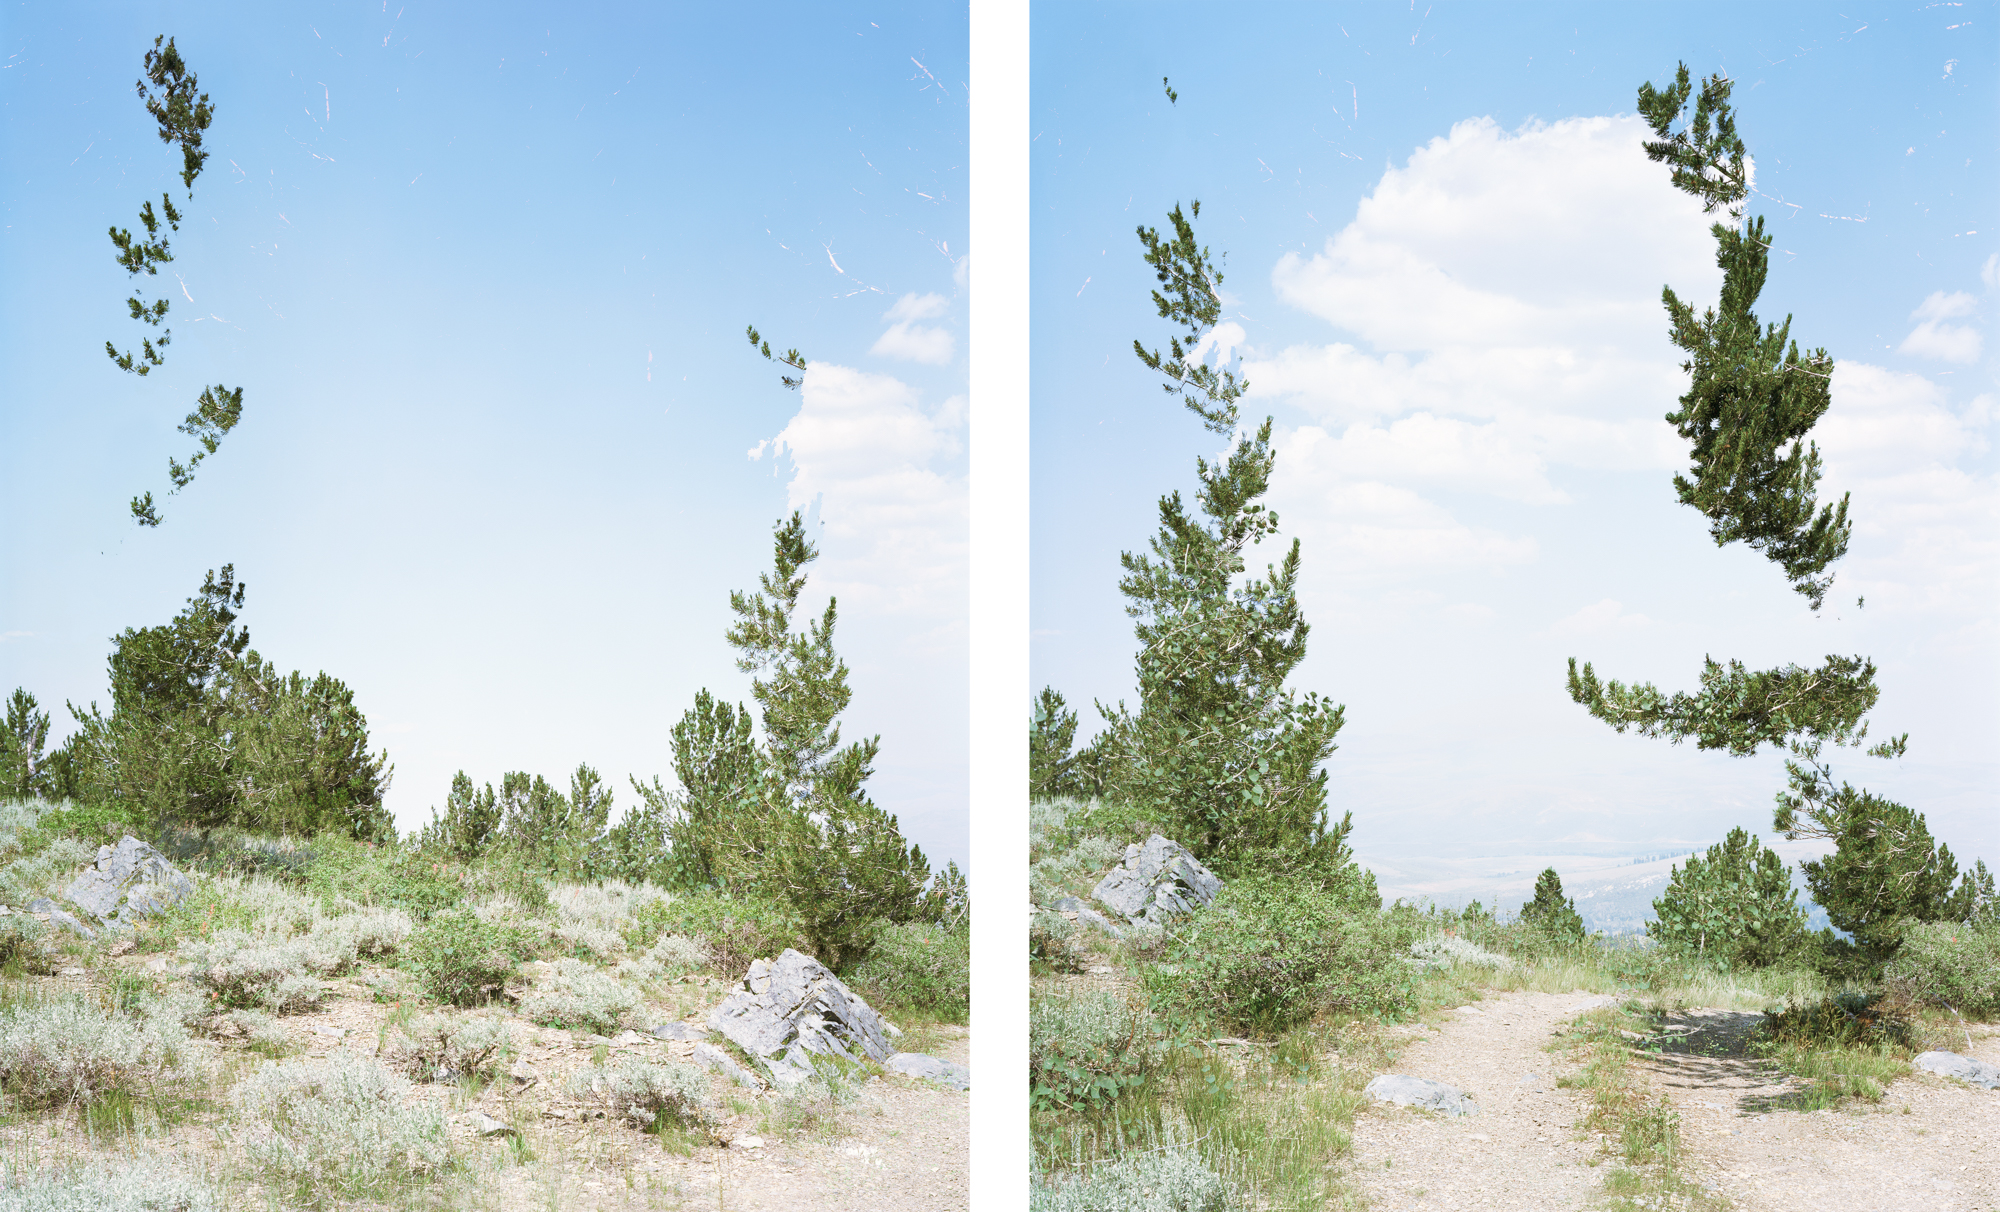 Lightness (VL), 2018 - a diptych of vertical long views of a desert landscape  showing a path through two Photoshopped trees that seem to float in space invisibly.